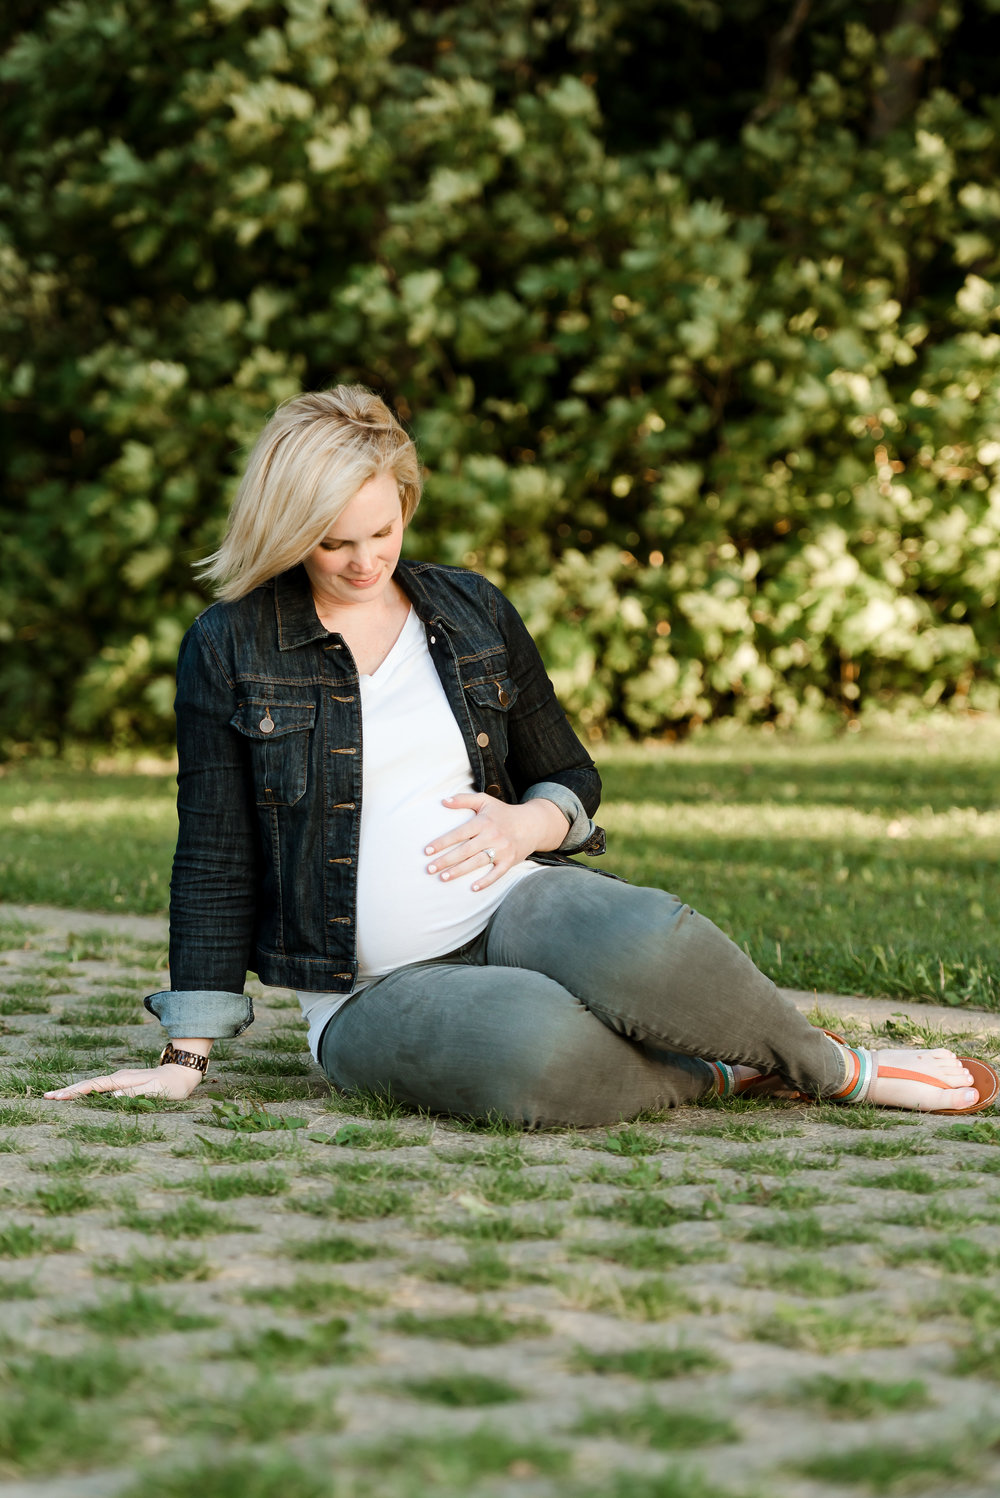 Minneapolis maternity photographer - laura robinson photography